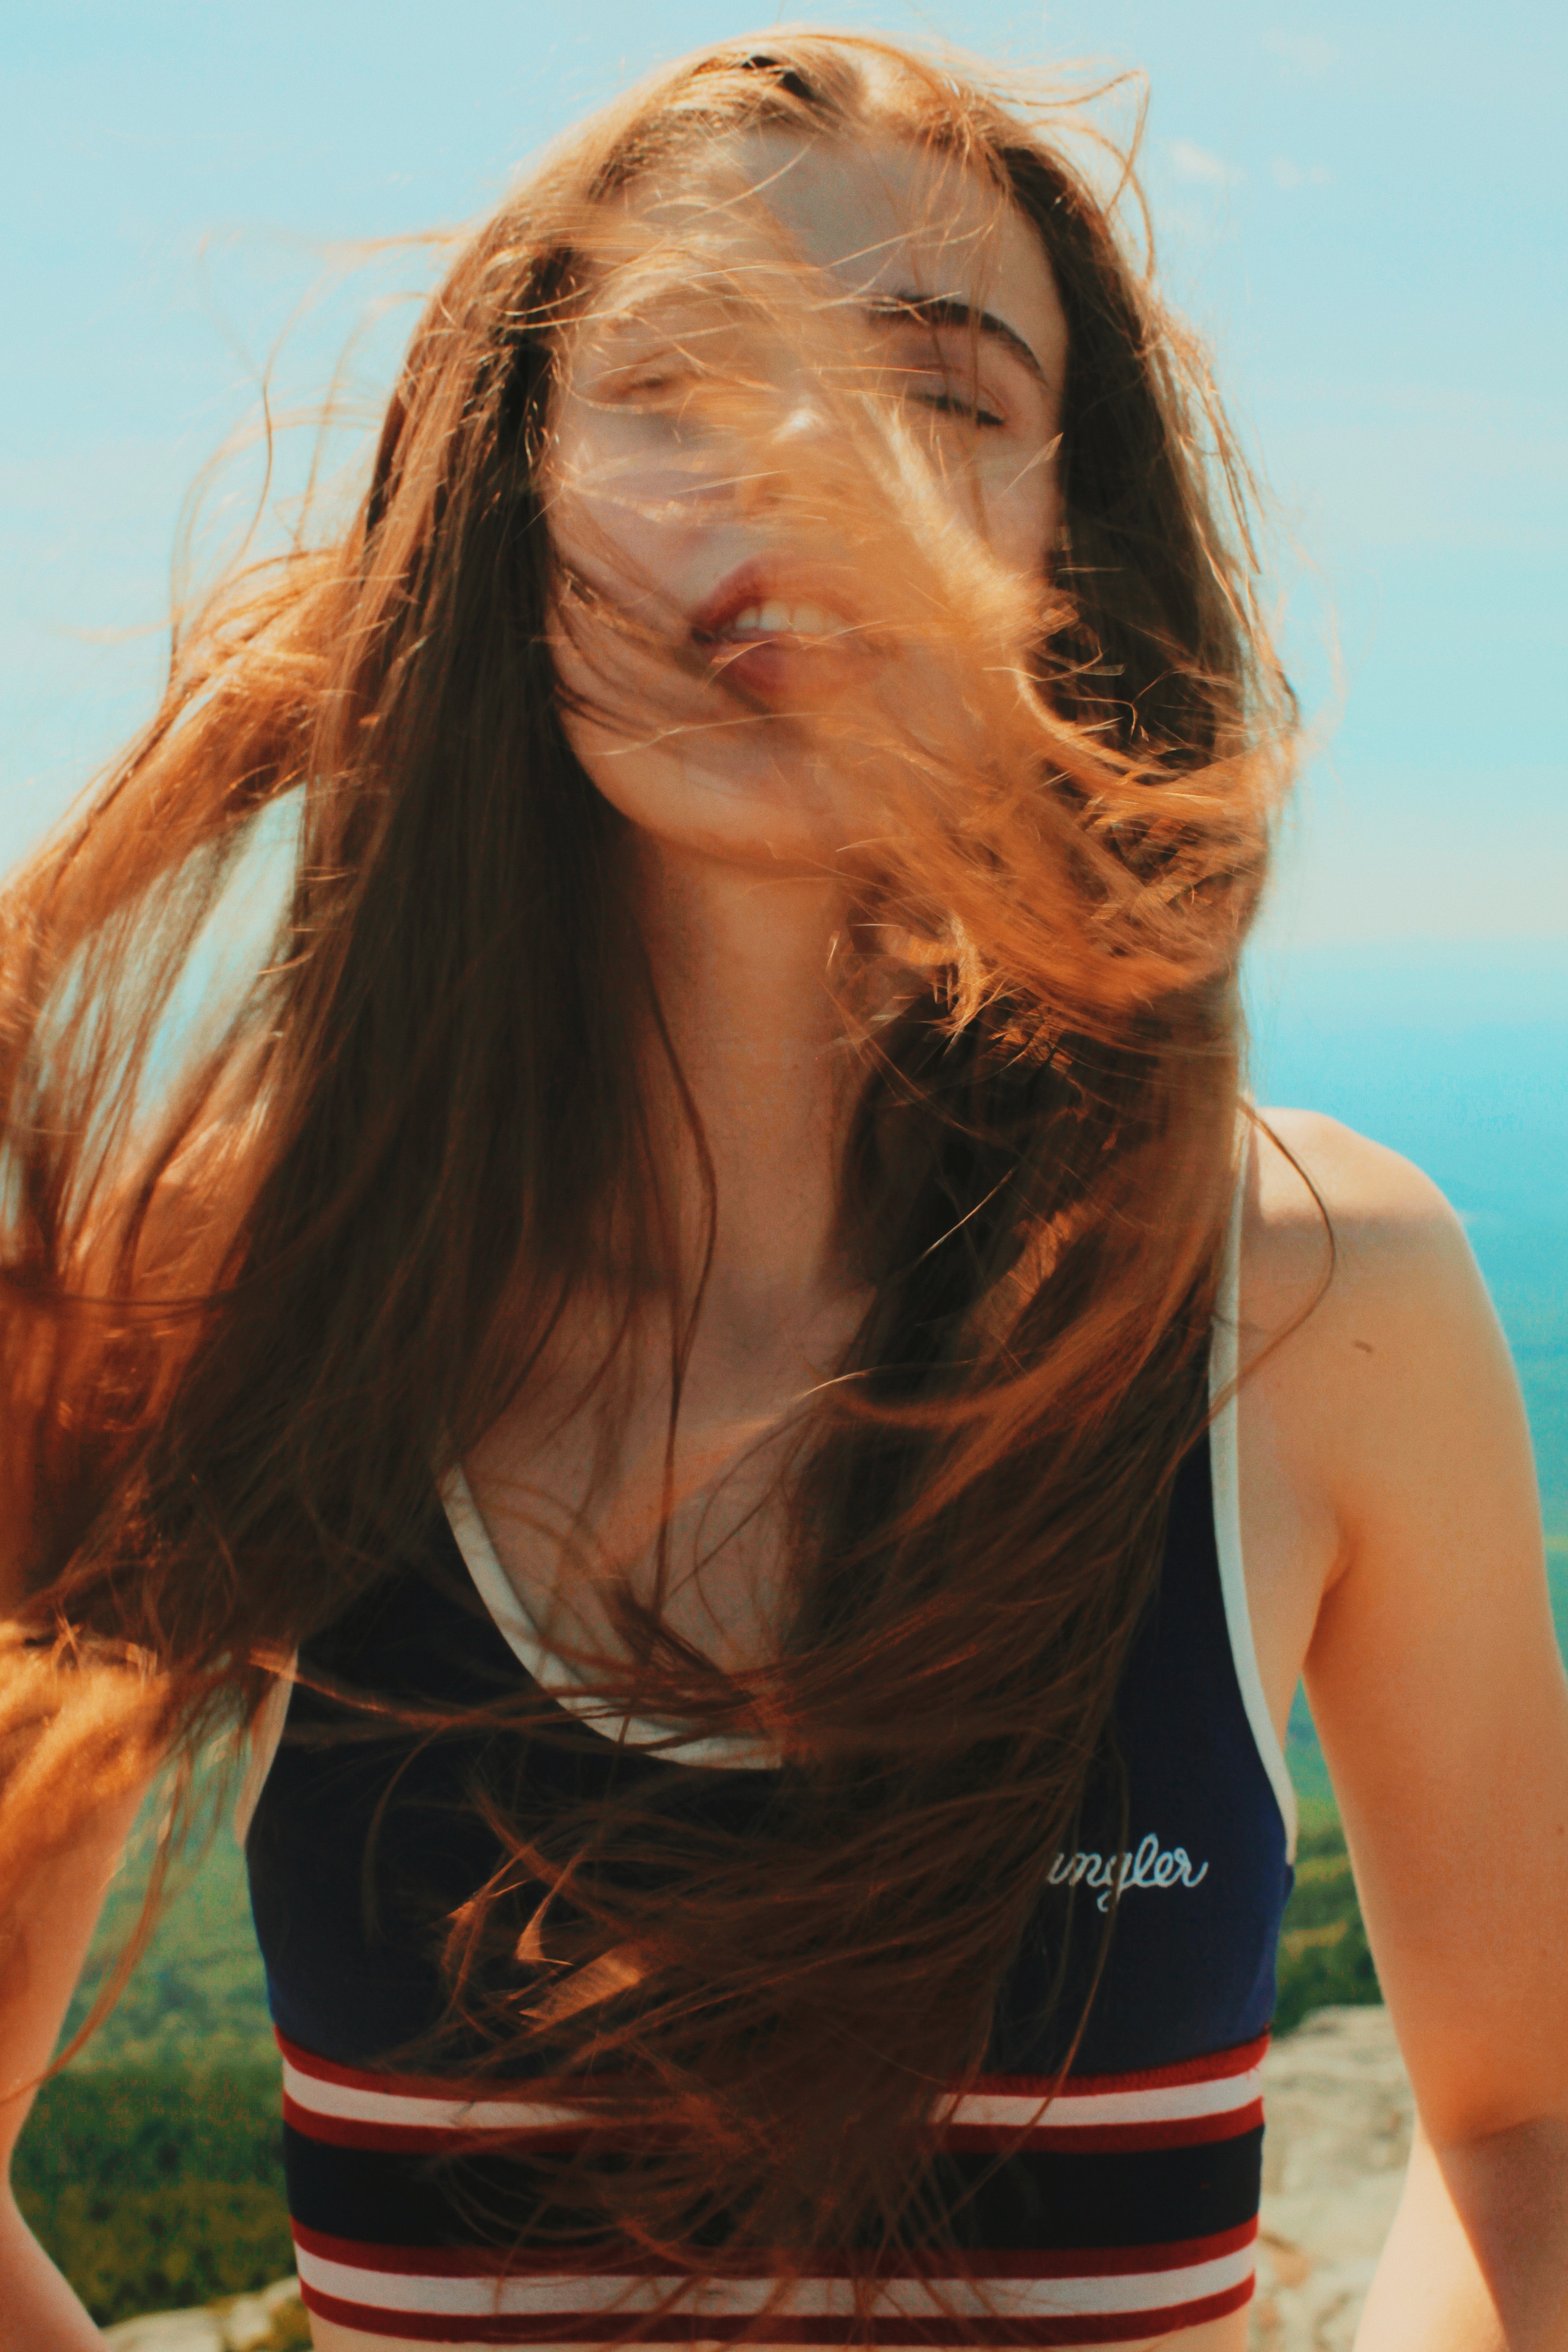 photo of woman wiping her hair